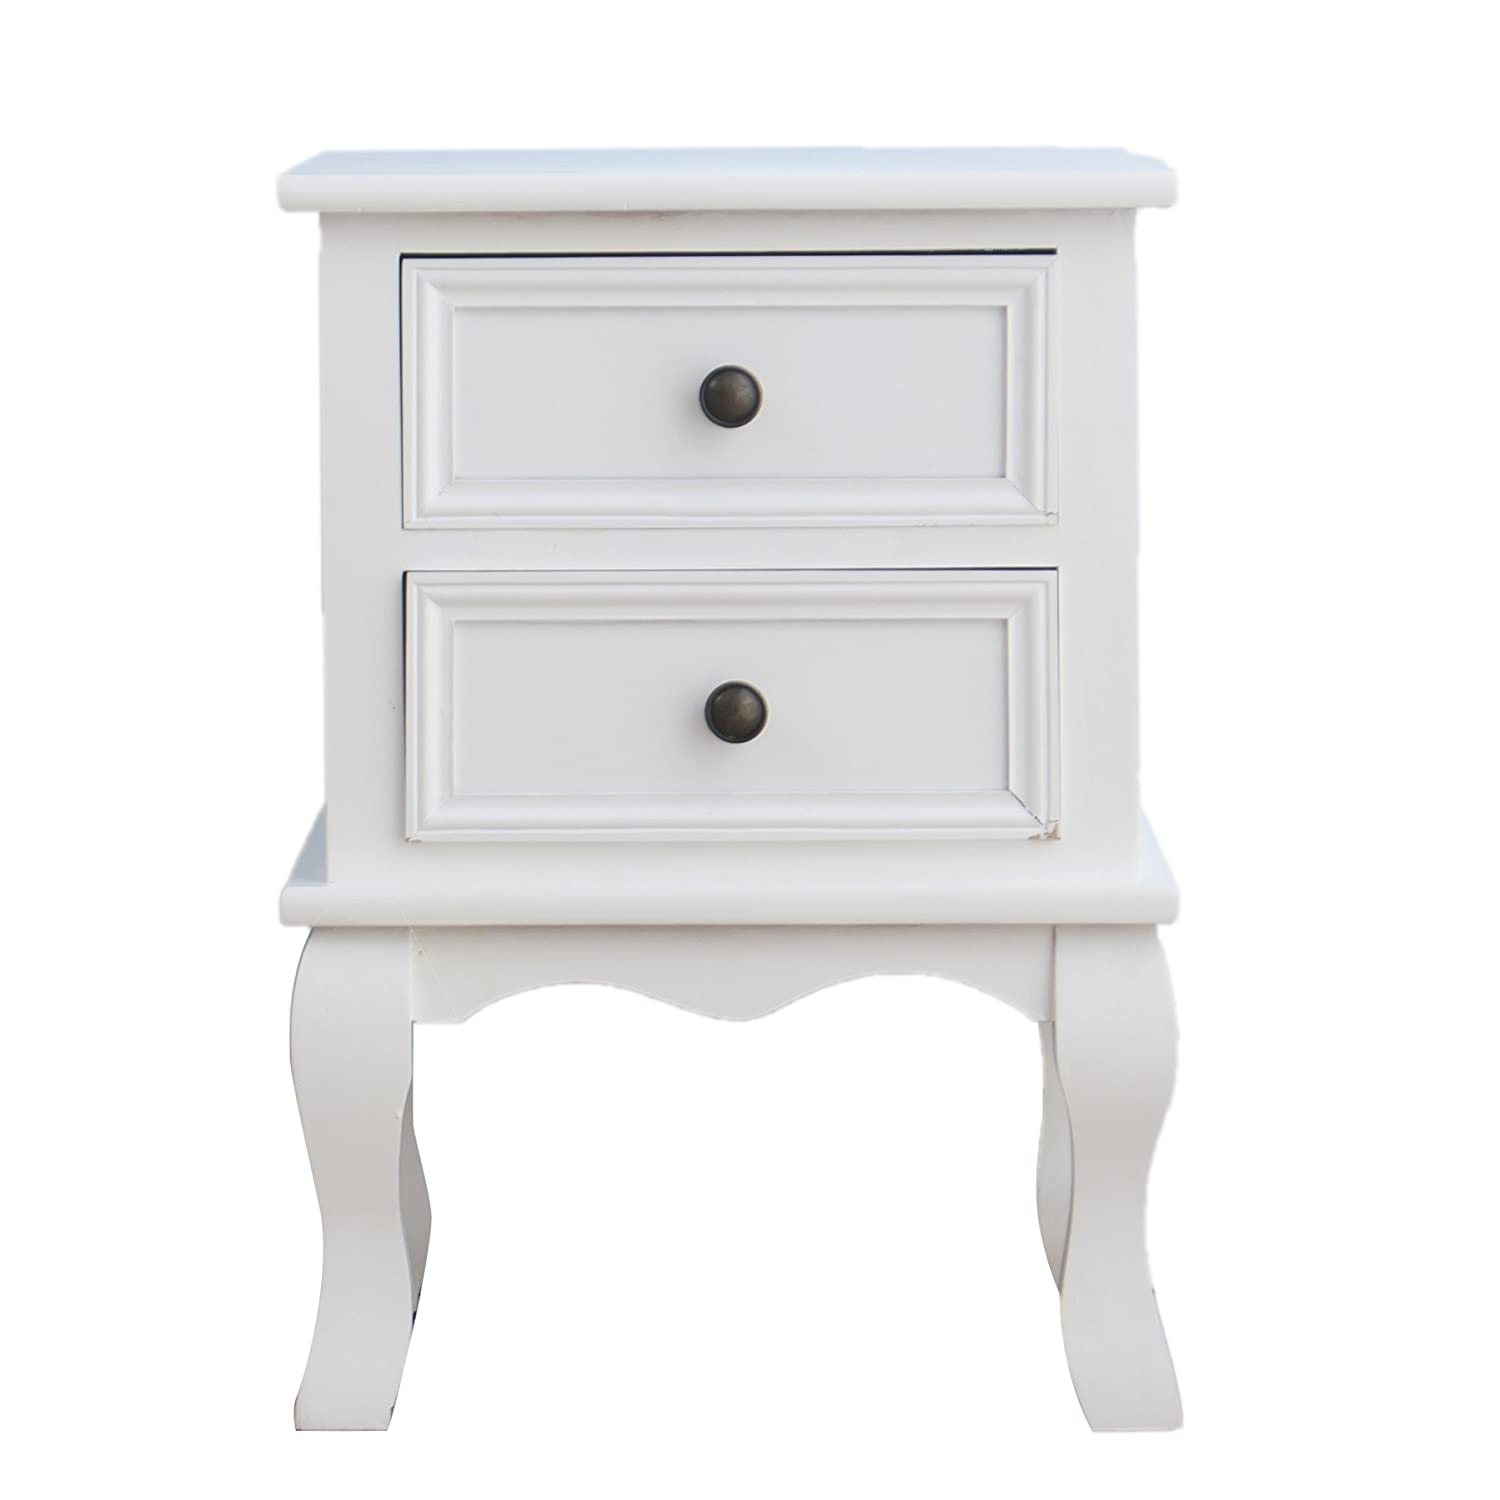 CherryTree Furniture Wood White Bedside Table 2-Drawers Cabinet (White):  Amazon.co.uk: Kitchen & Home